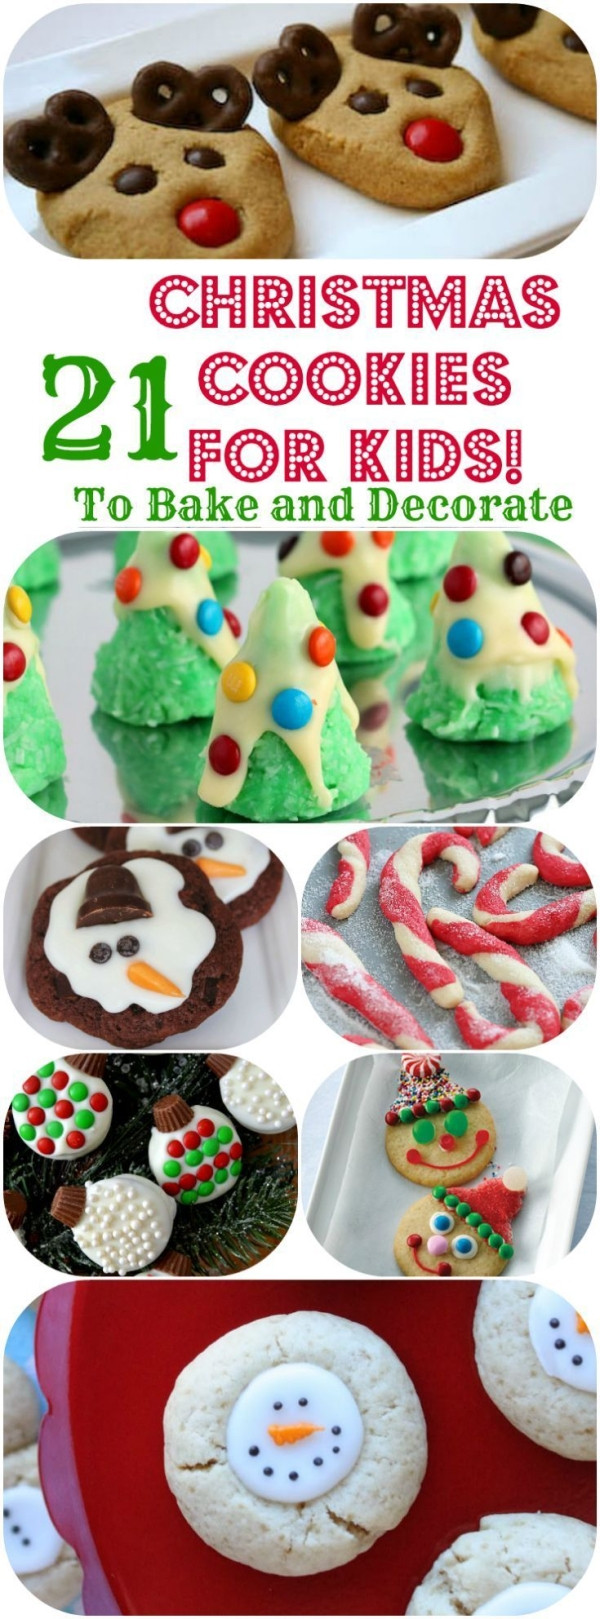 Christmas Cookies For Kids  Easy Christmas Cookie recipes for Kids to Bake or Decorate